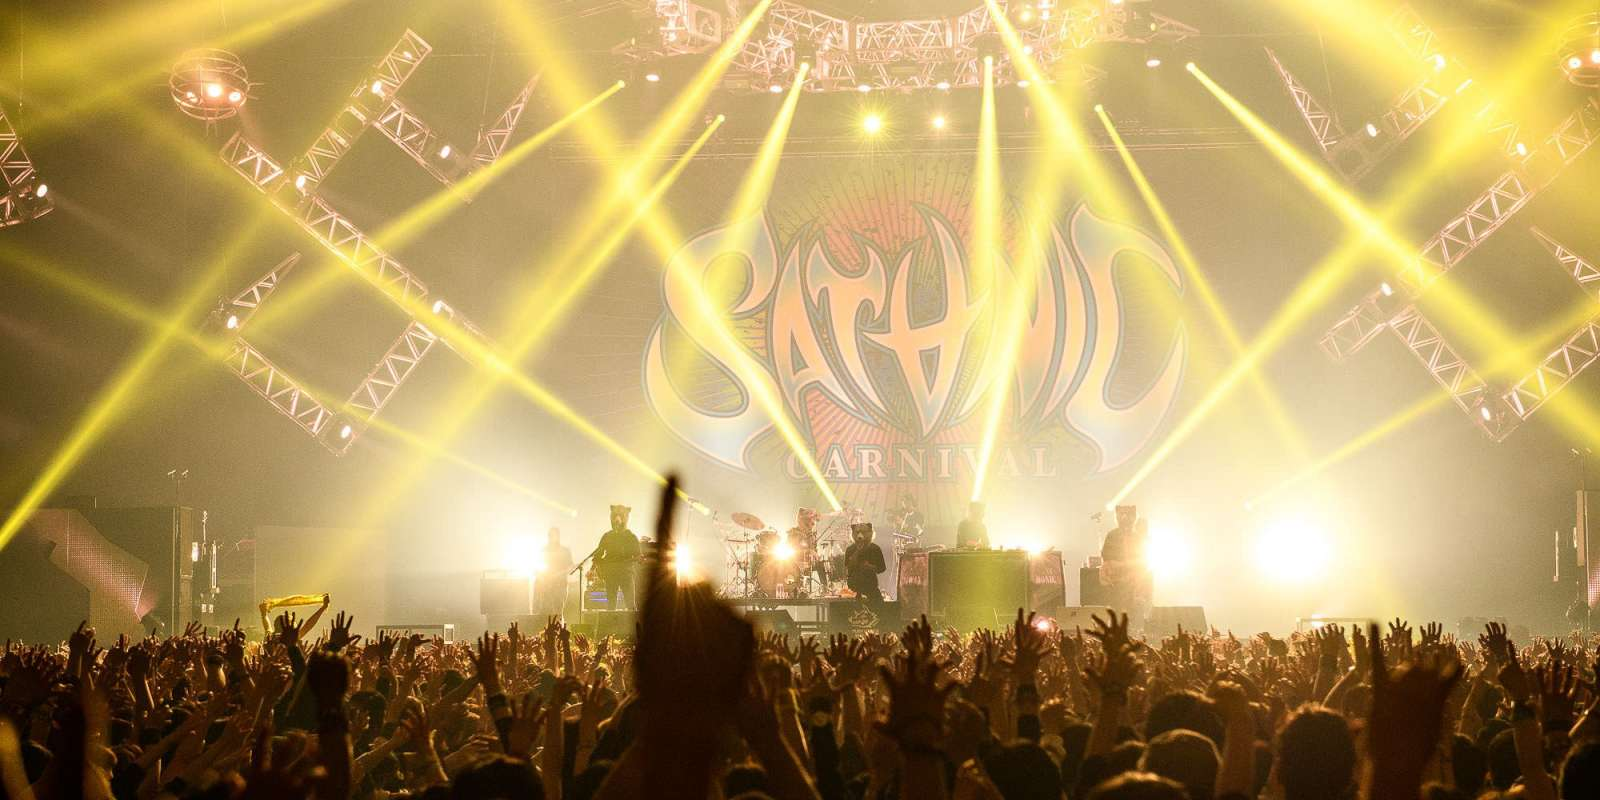 MAN WITH A MISSION at SATANIC CARNIVAL'18